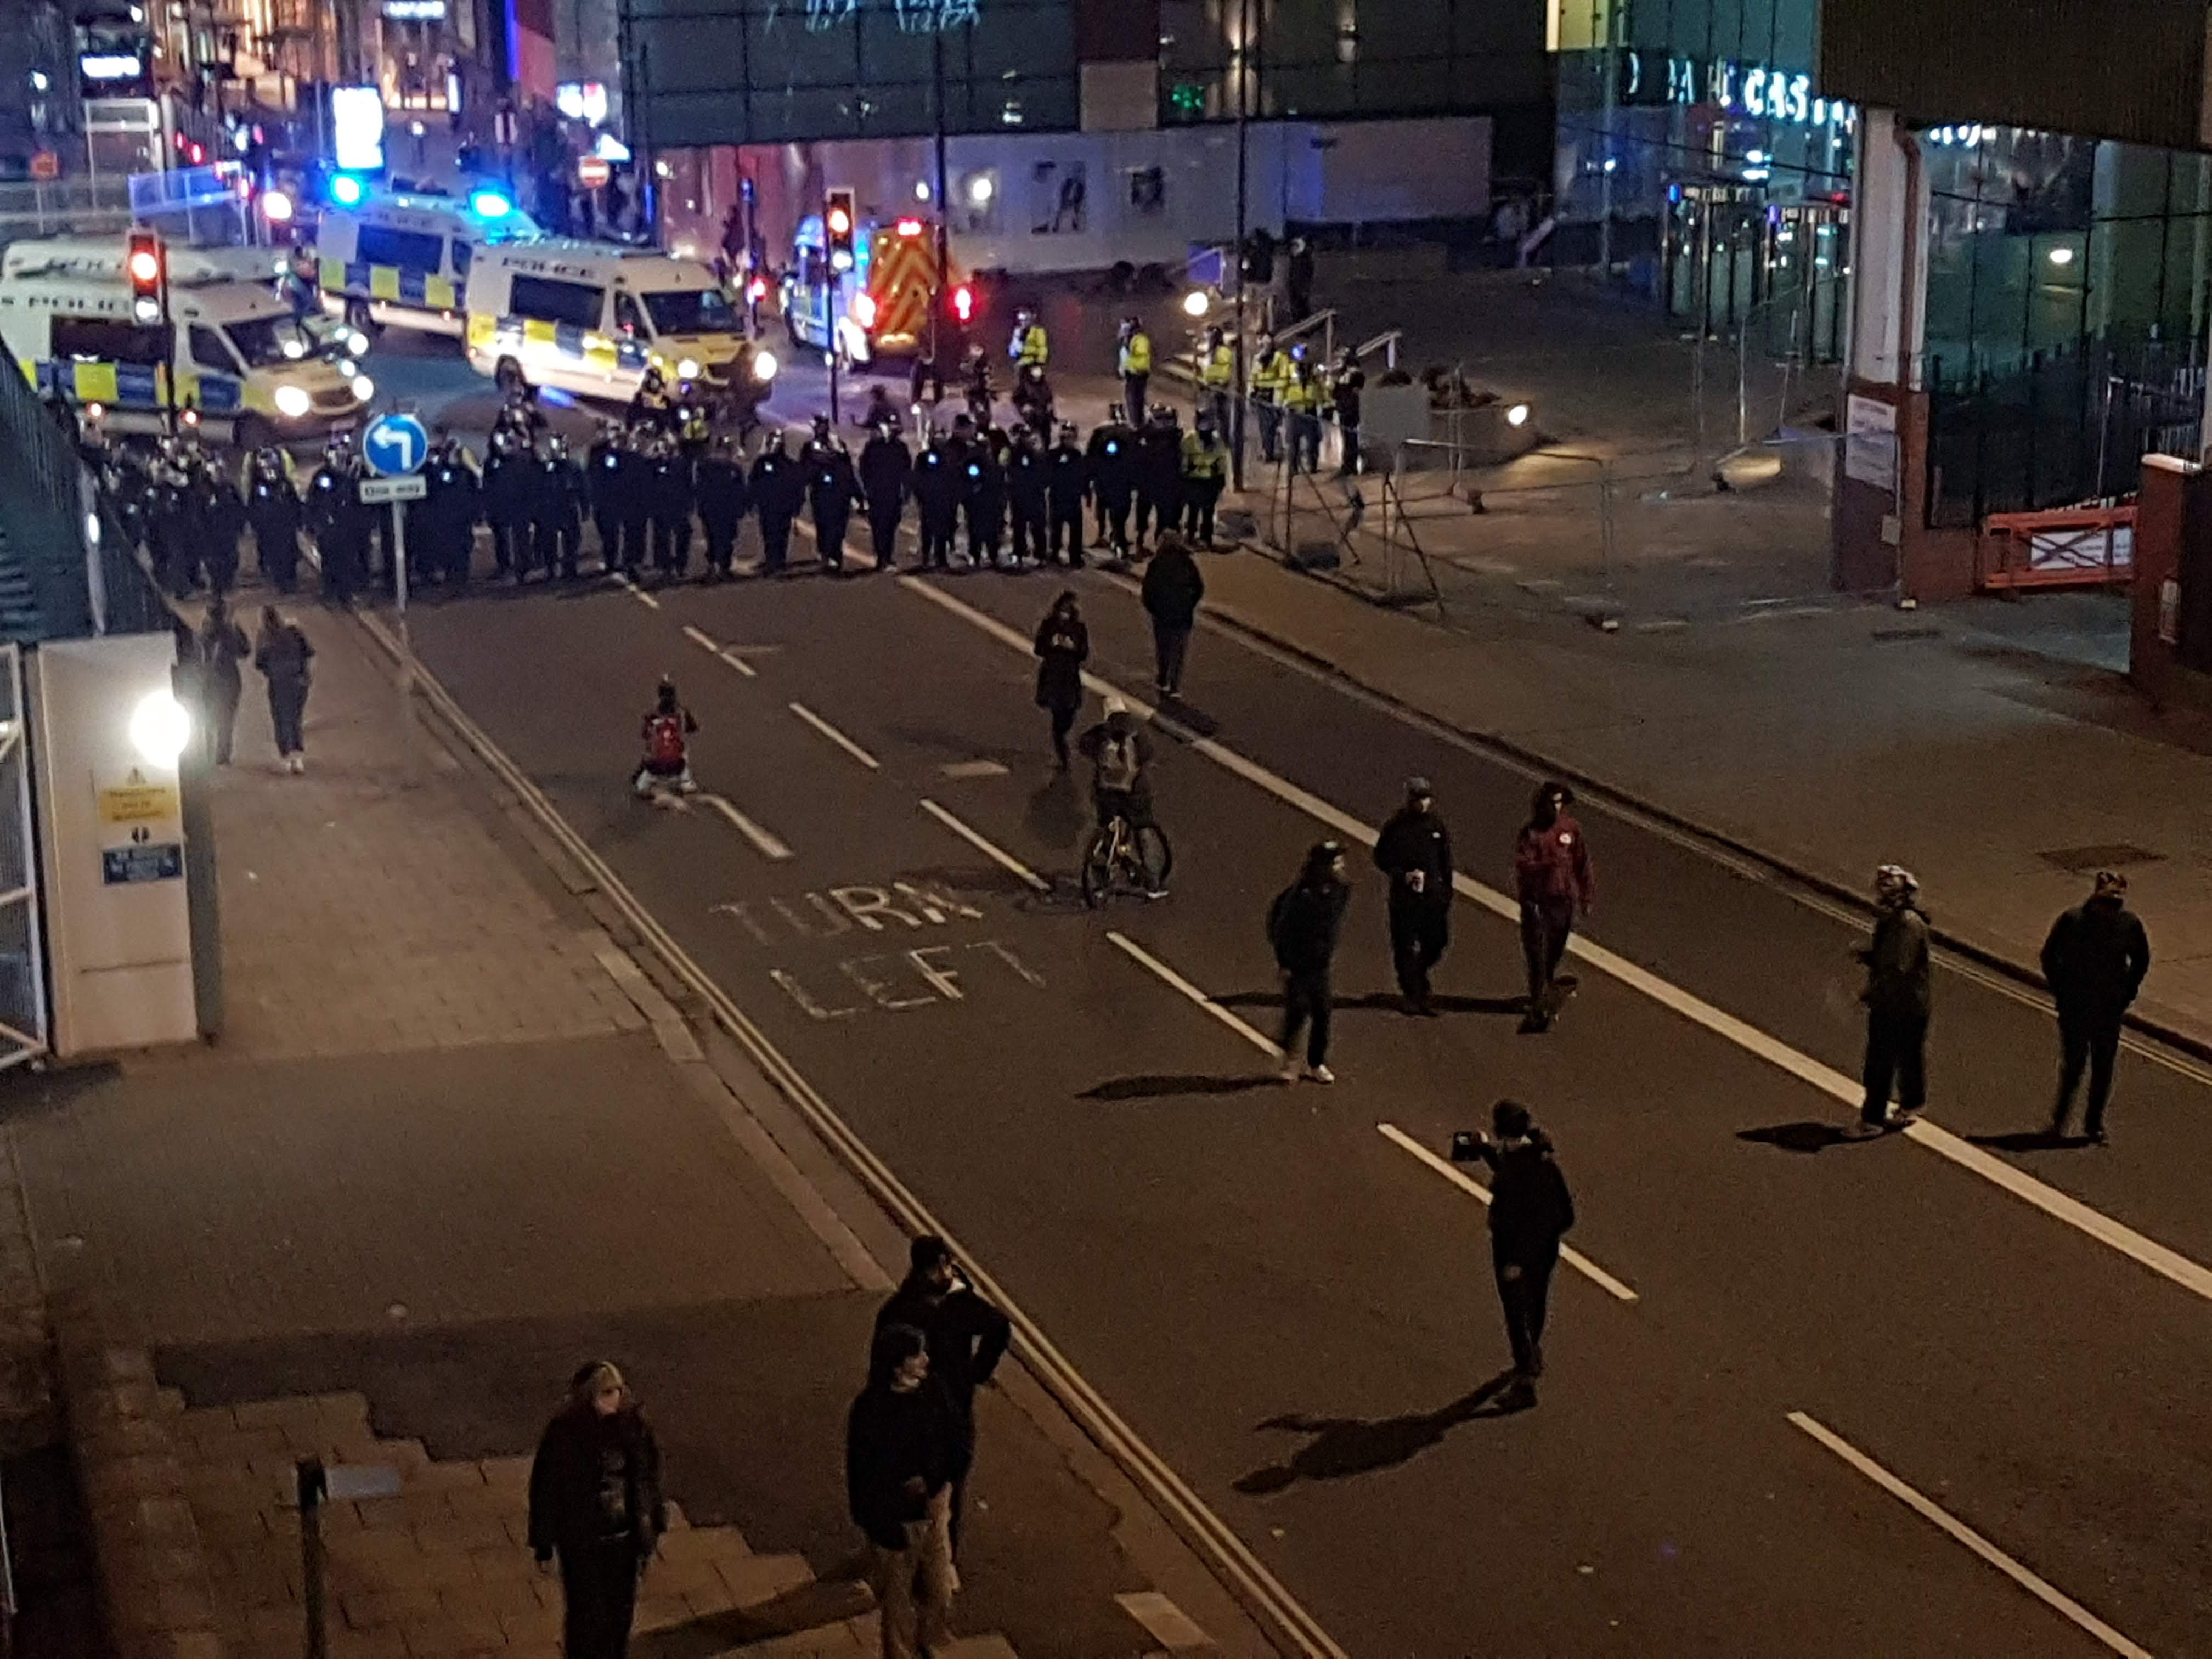 Around 15 protesters walk away from 40 riot police